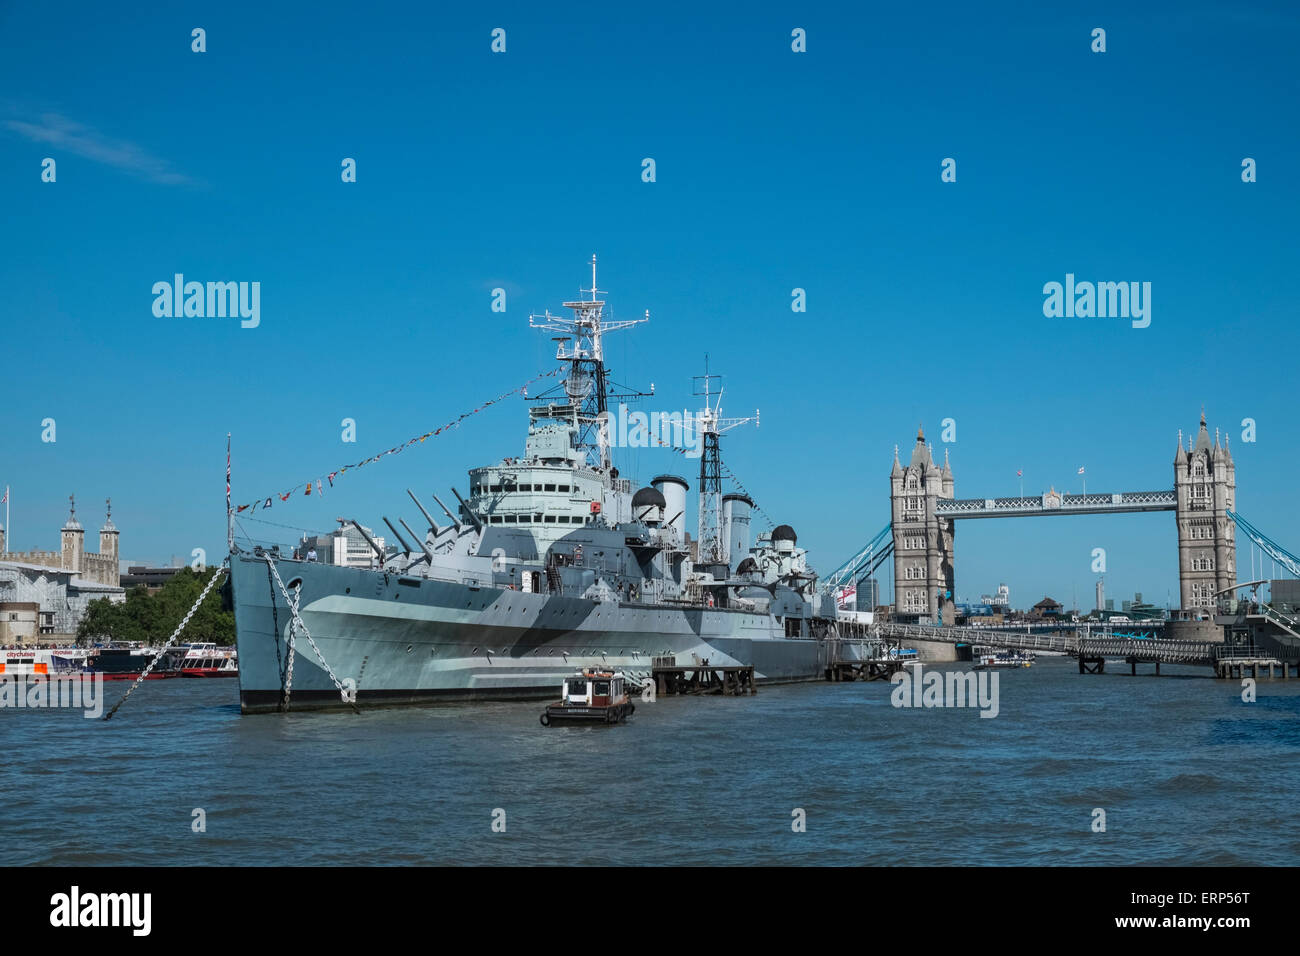 HMS Belfast museum ship moored on River Thames, with Tower Bridge in the background, London UK - Stock Image